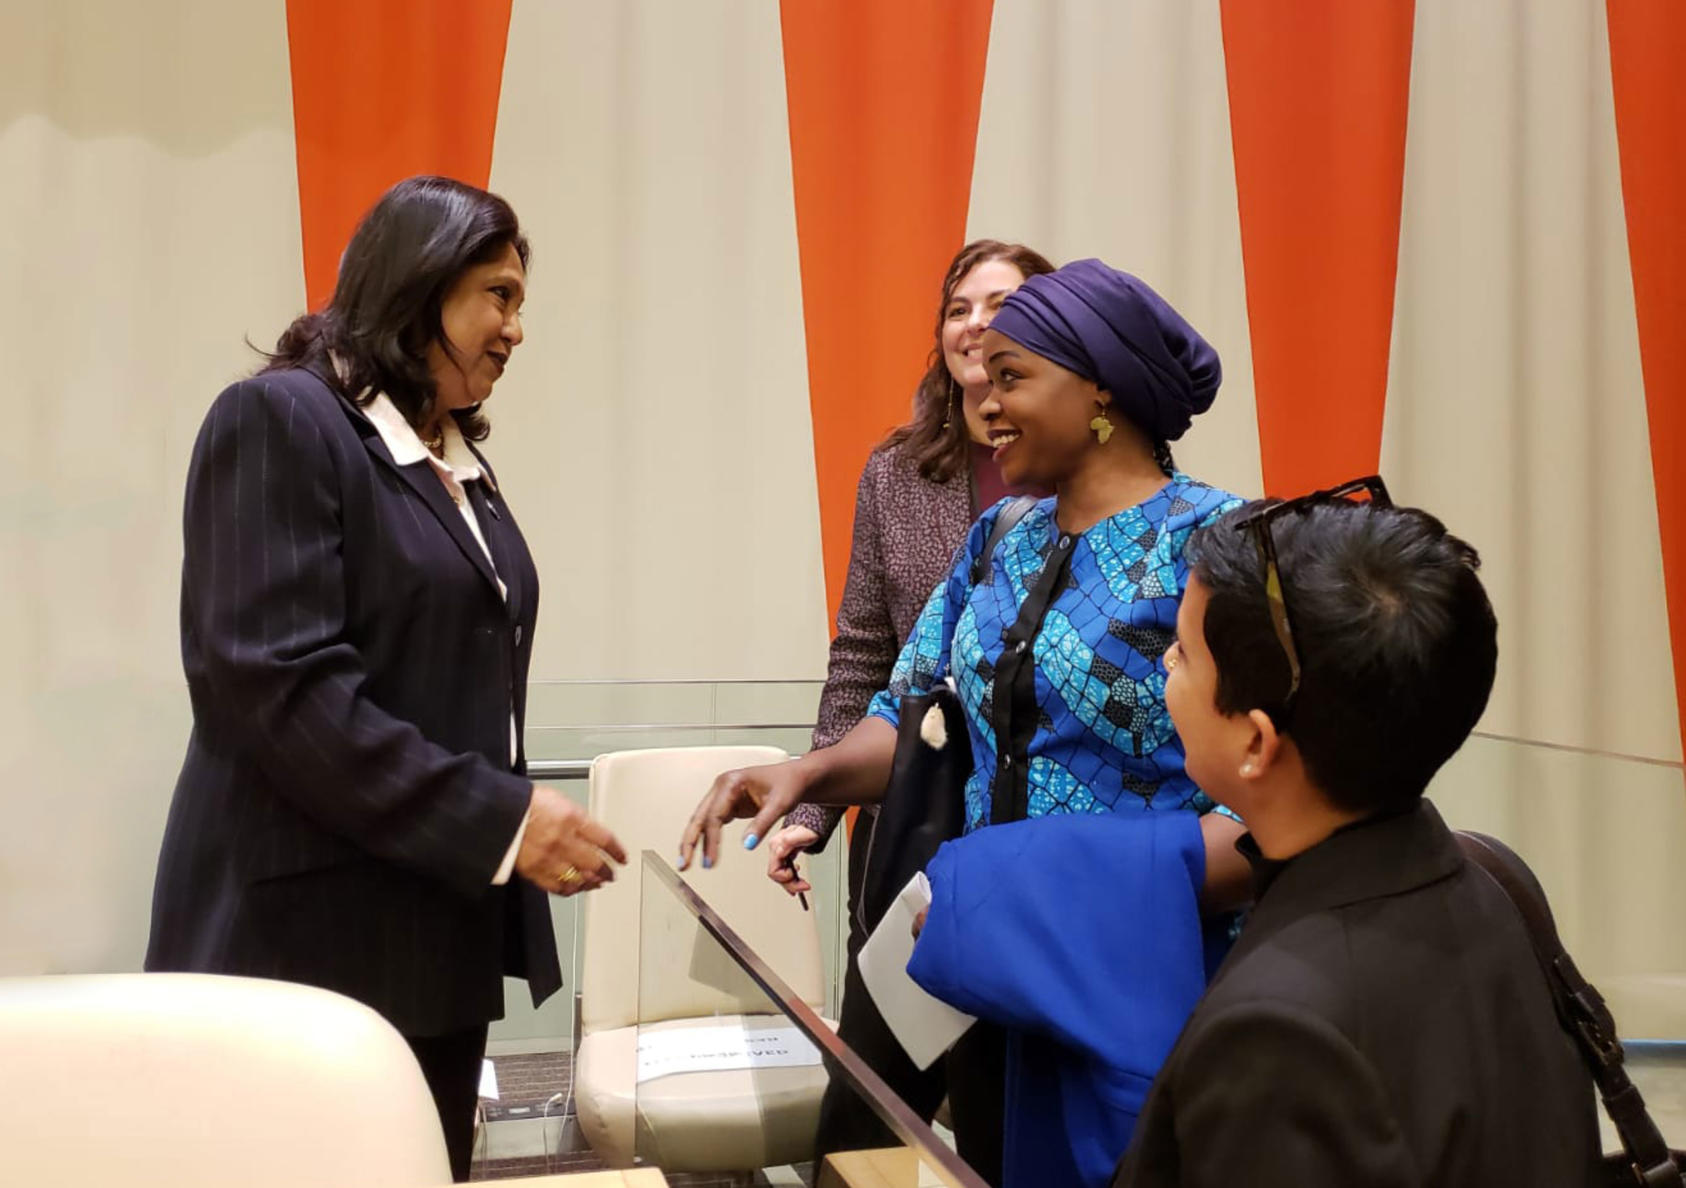 Rita Lopidia meets Pramila Patten, left, a representative of the U.N. secretary general, at the United Nations in 2018, when both women briefed the U.N. Security Council on the widespread atrocities of sexual violence amid warfare